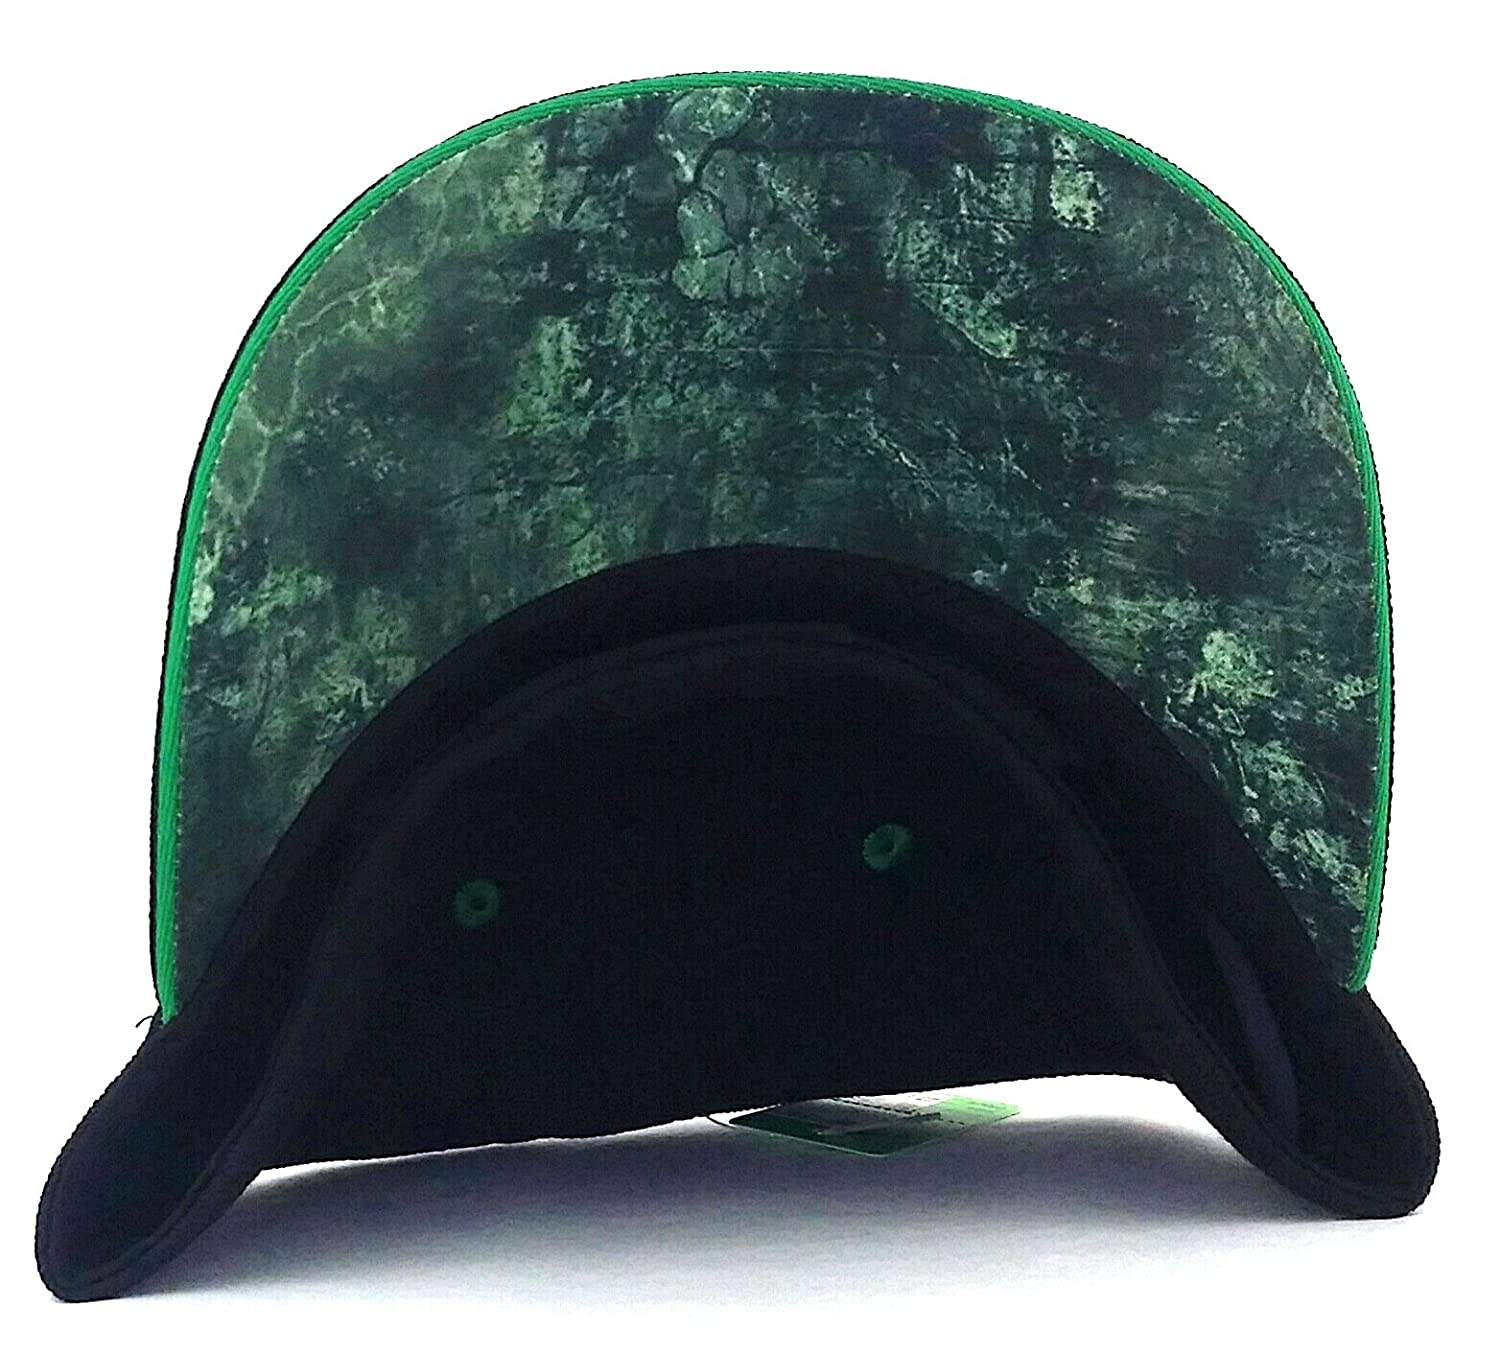 a8e4d24187bc9 UFC Reebok RBK MMA Black Red Green Octagon Fighters Flex Fit Fitted ...